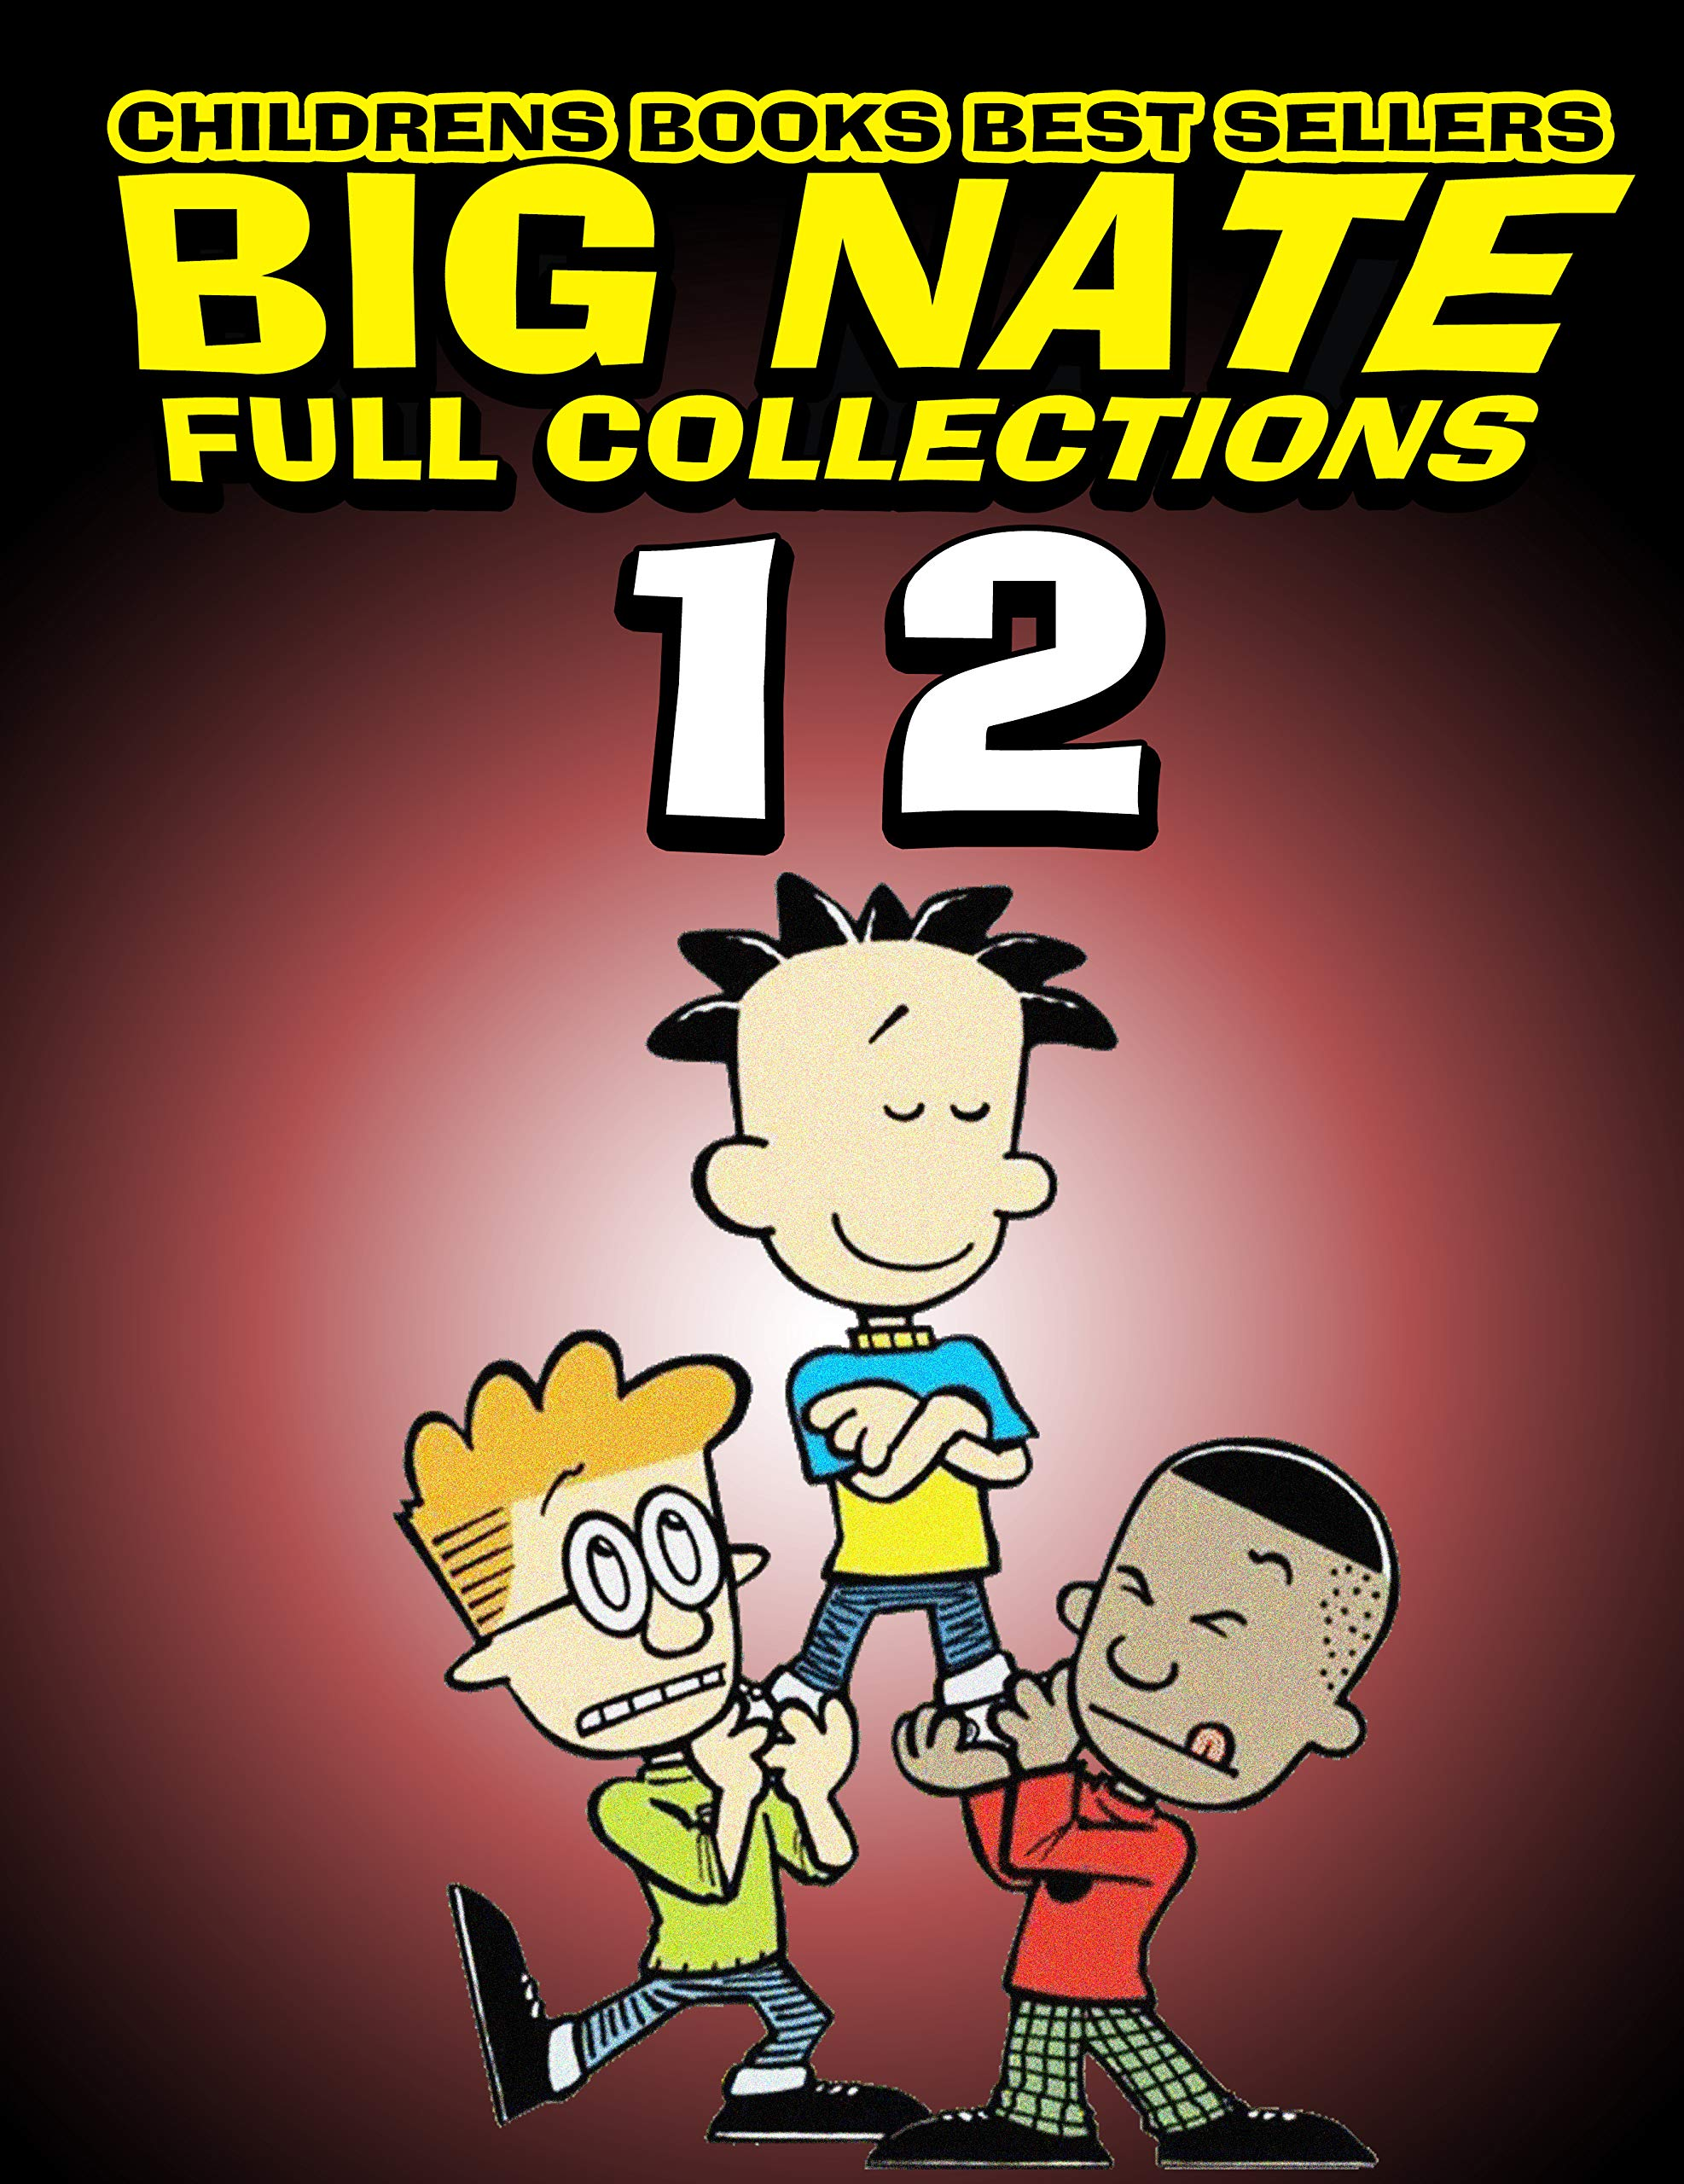 Childrens books best sellers Big Nate Full Collections: Completed Series Big Nate Volume 12